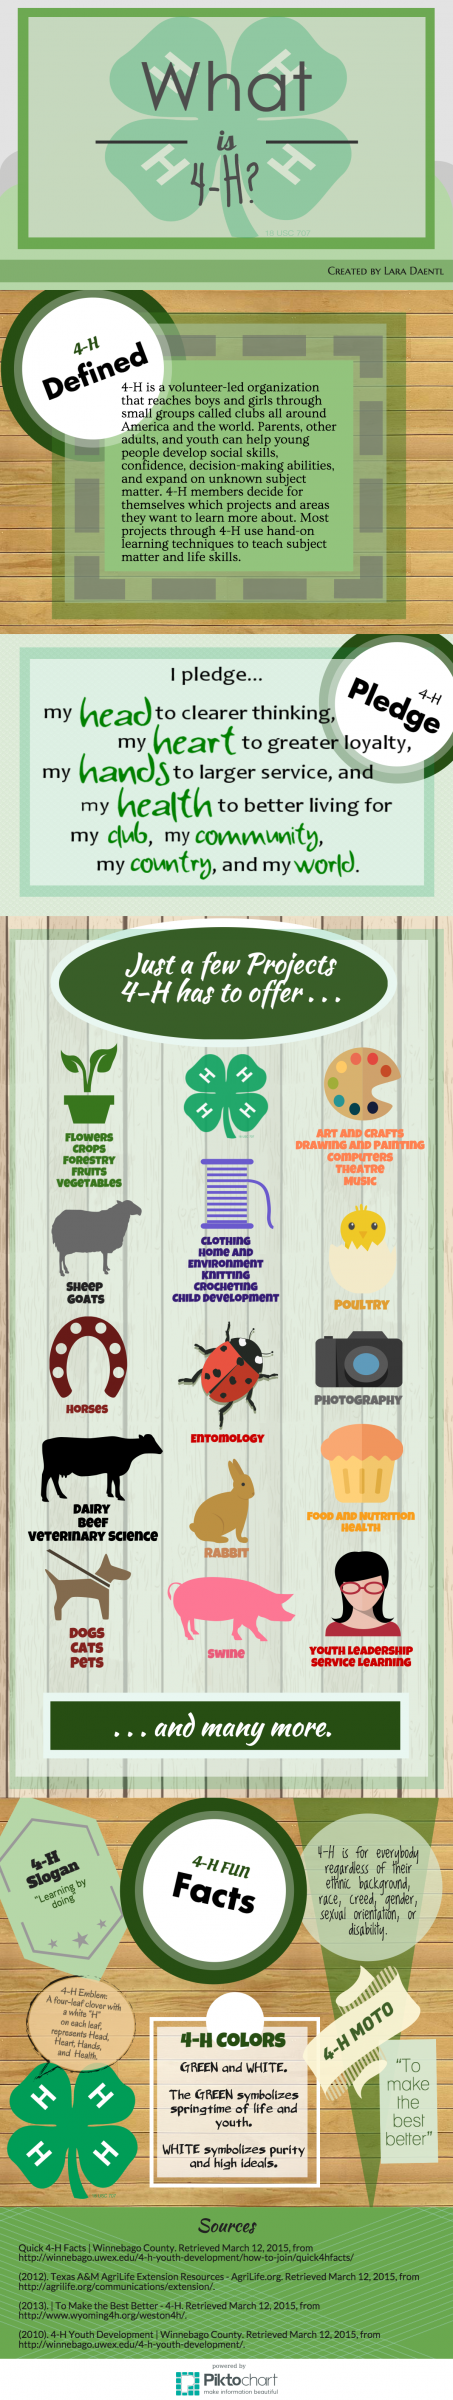 What is 4-H Graphic with information about 4-H Programs